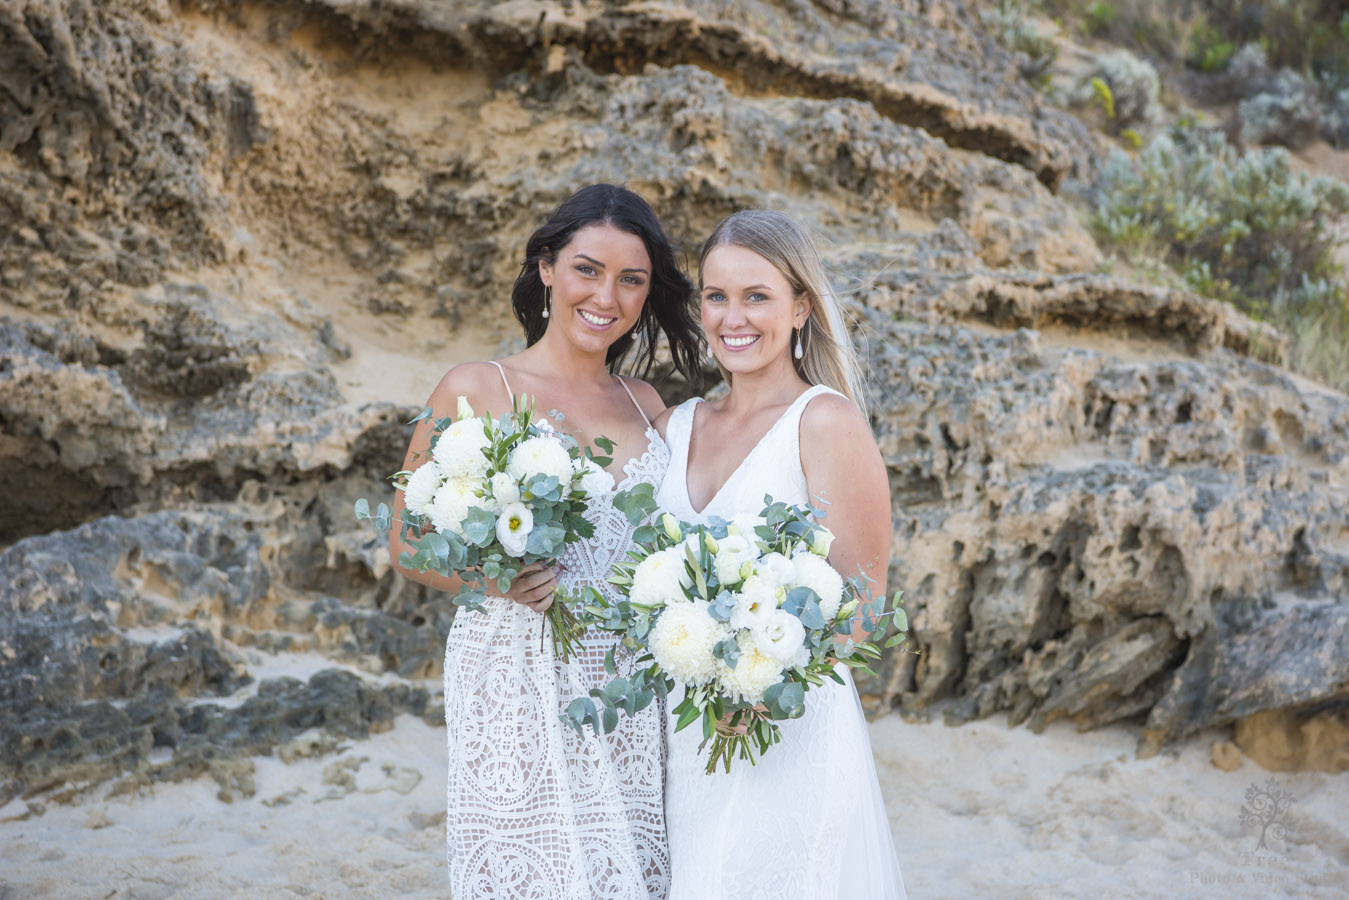 Sorrento bride and bridesmaid